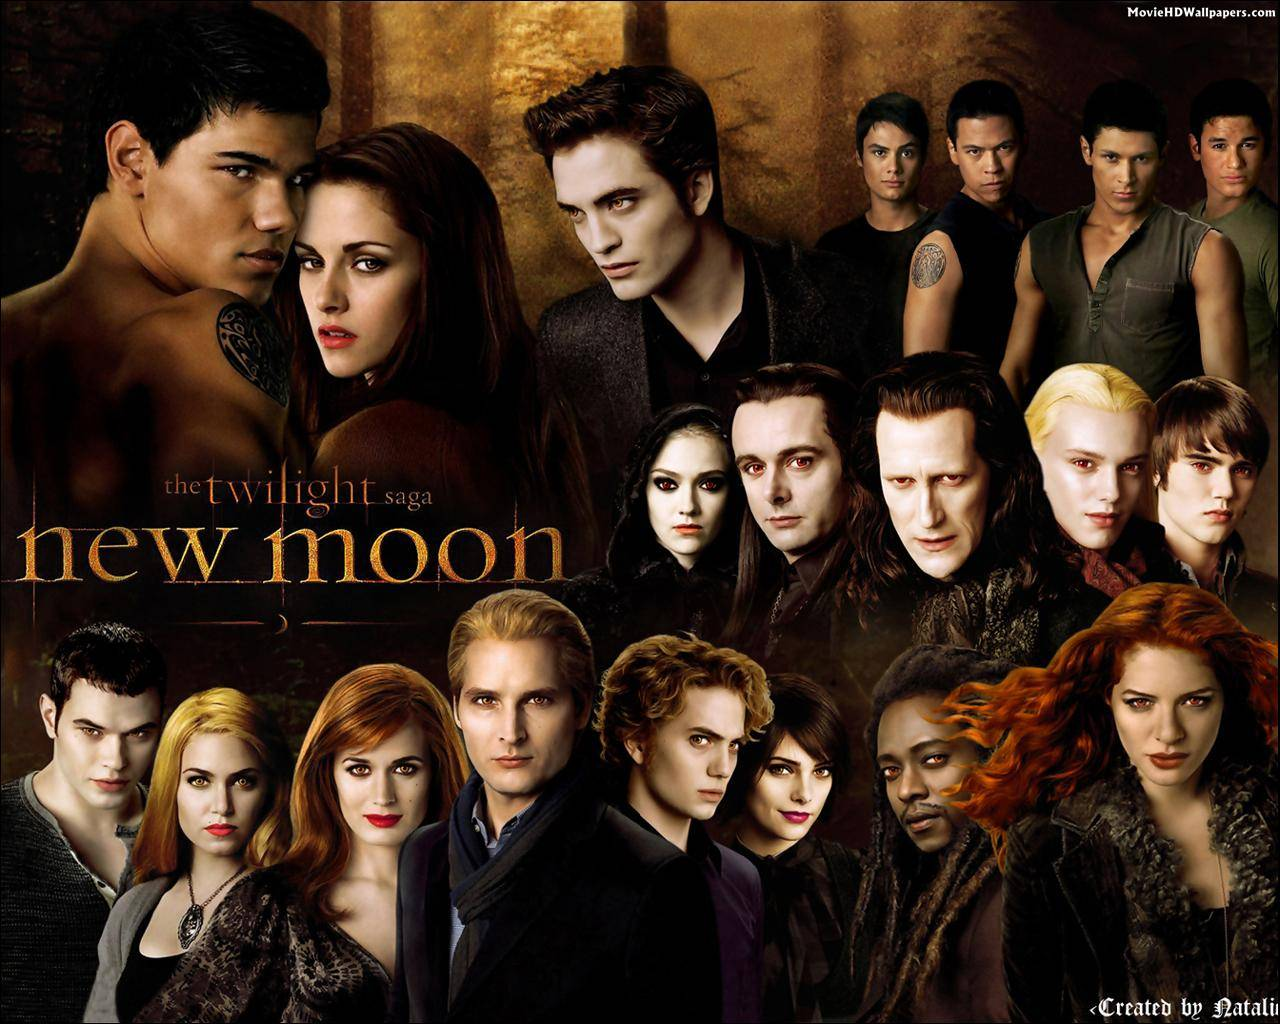 The Twilight Saga New Moon 2009 Movie